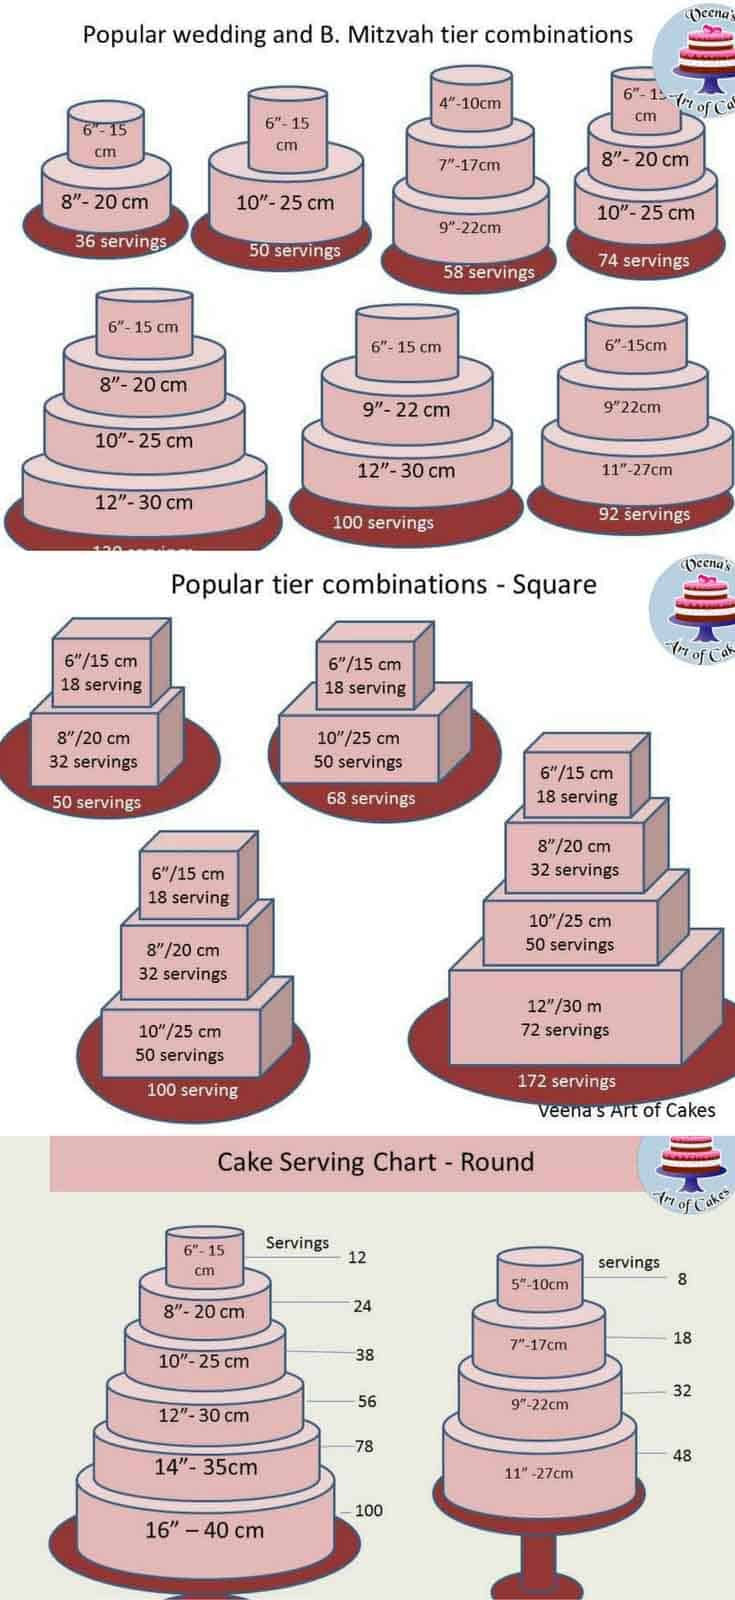 Cake Serving Chart Guide Popular Tier Combinations